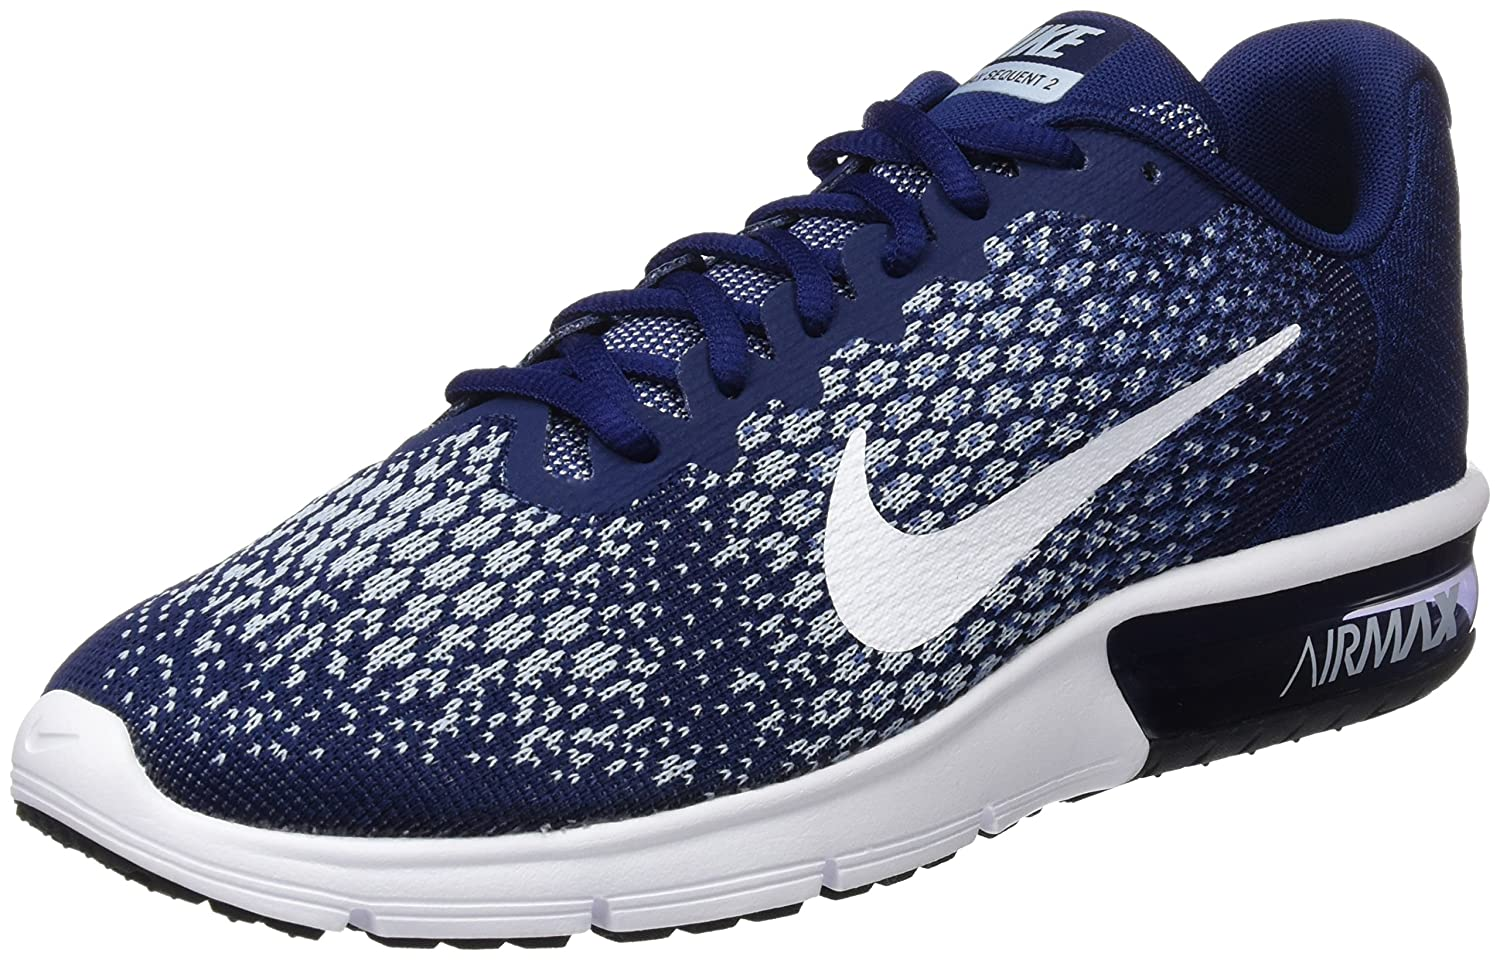 NIKE Men's Air Max Sequent 2 Running Shoe B01H2LP66M 8 D(M) US|Binary Blue/White-blue Moon